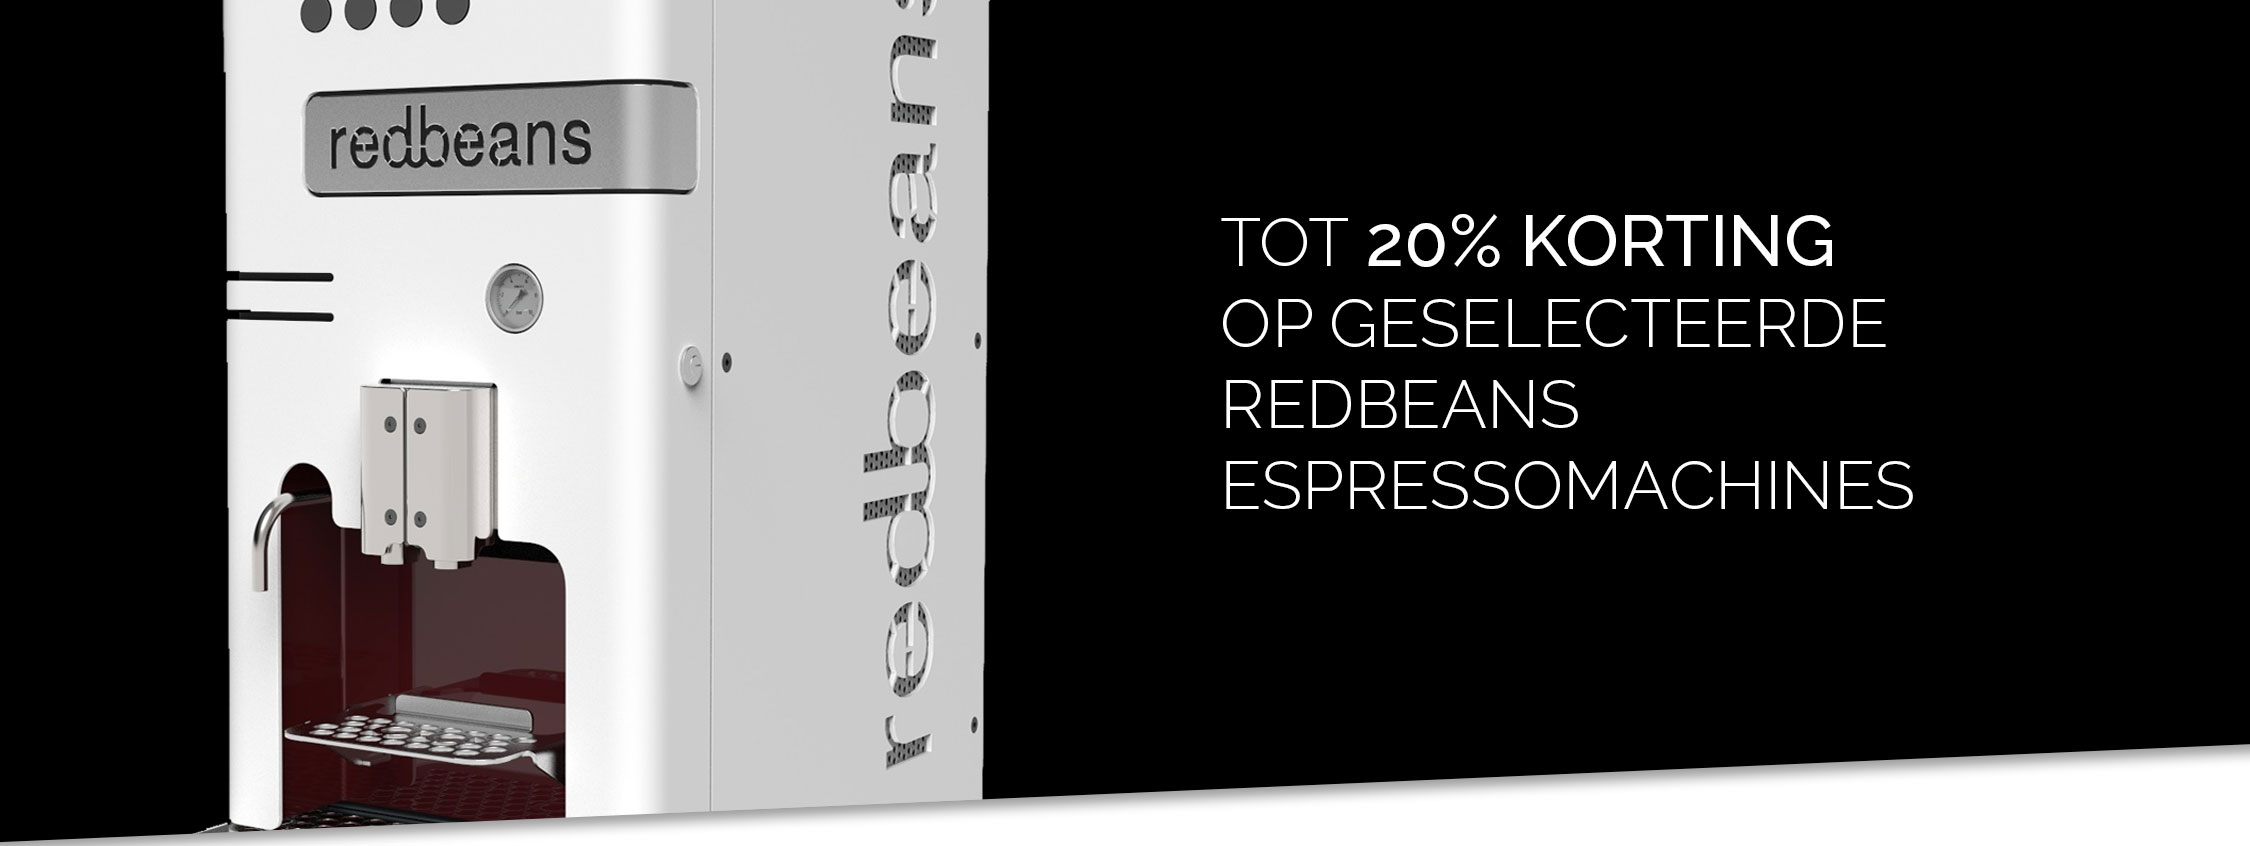 rebeans-korting-capriole-coffee-service-brand